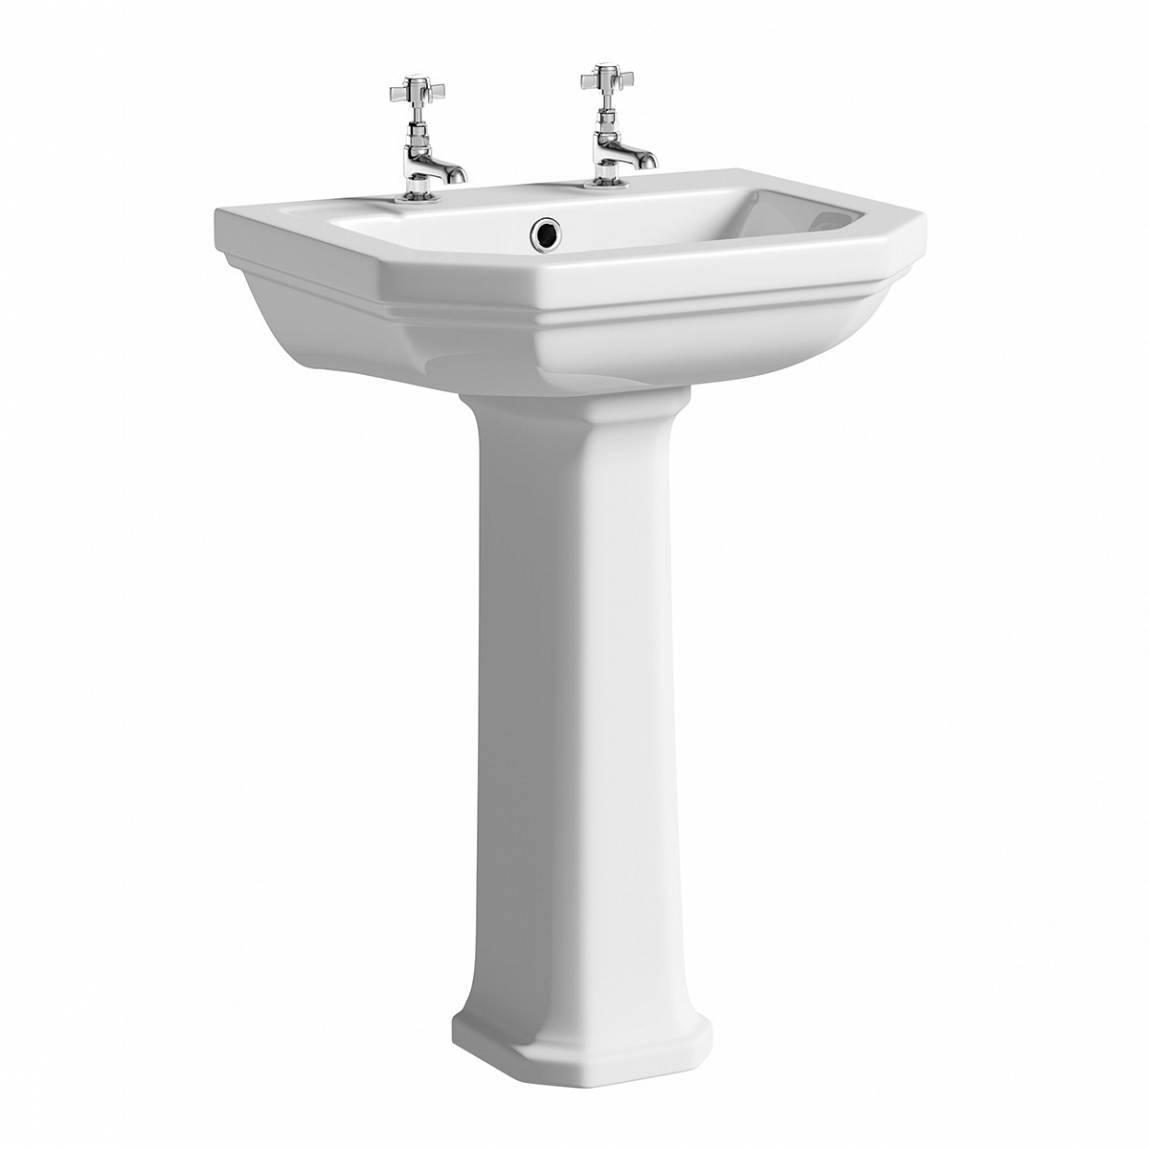 Image of Regency 2TH Basin and Pedestal Large